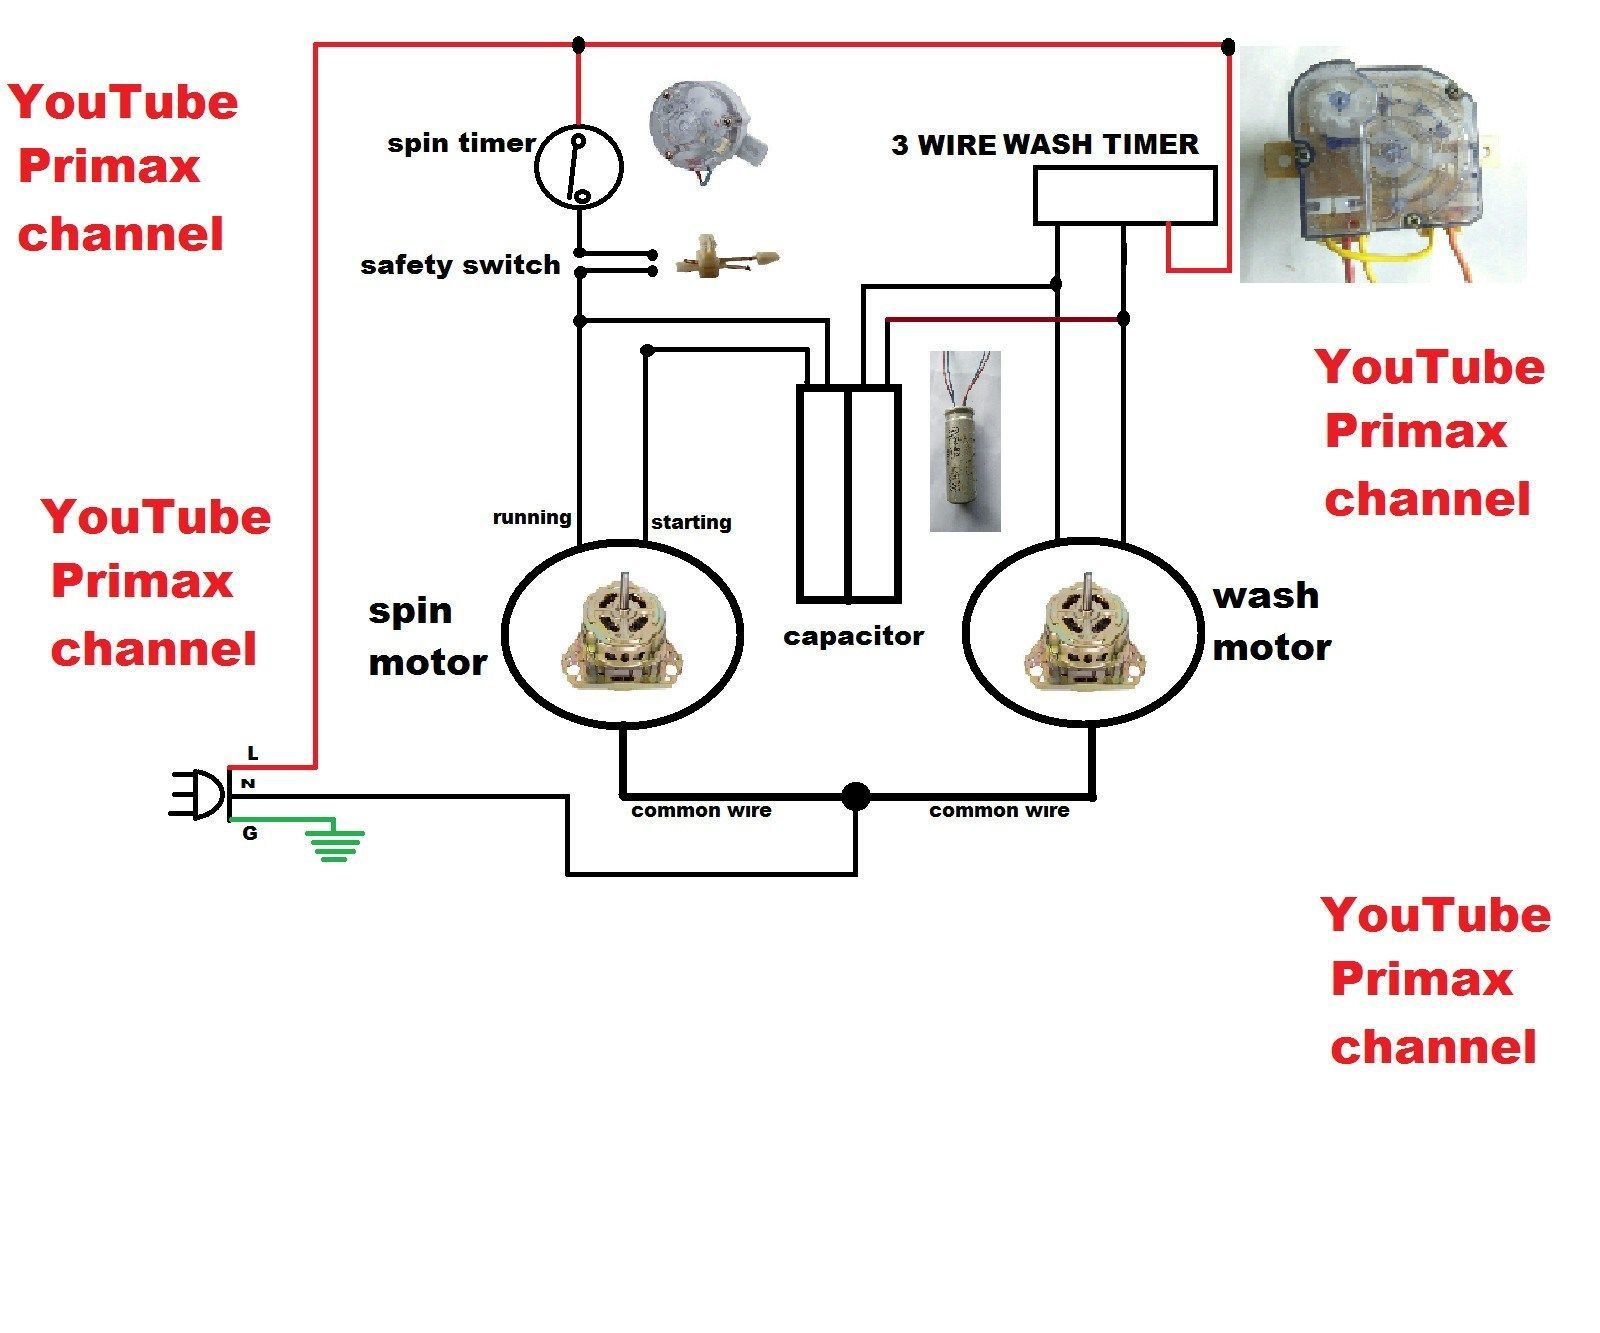 Edison System Wiring Diagram in 2020 Washing machine and